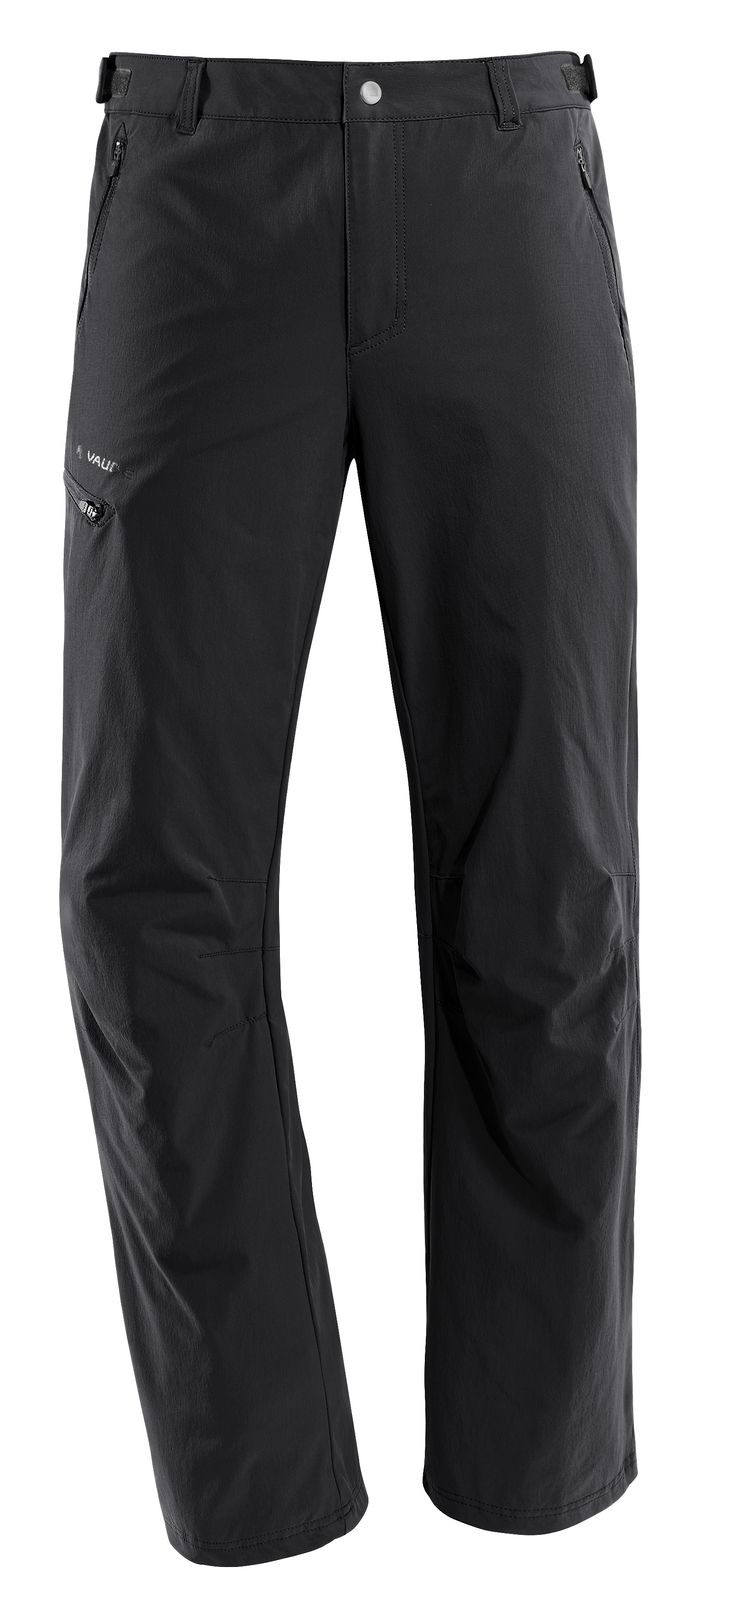 Mens Farley Stretch Pants II VAUDE Mens Farley Pantalon Stretch pour Femme II Homme